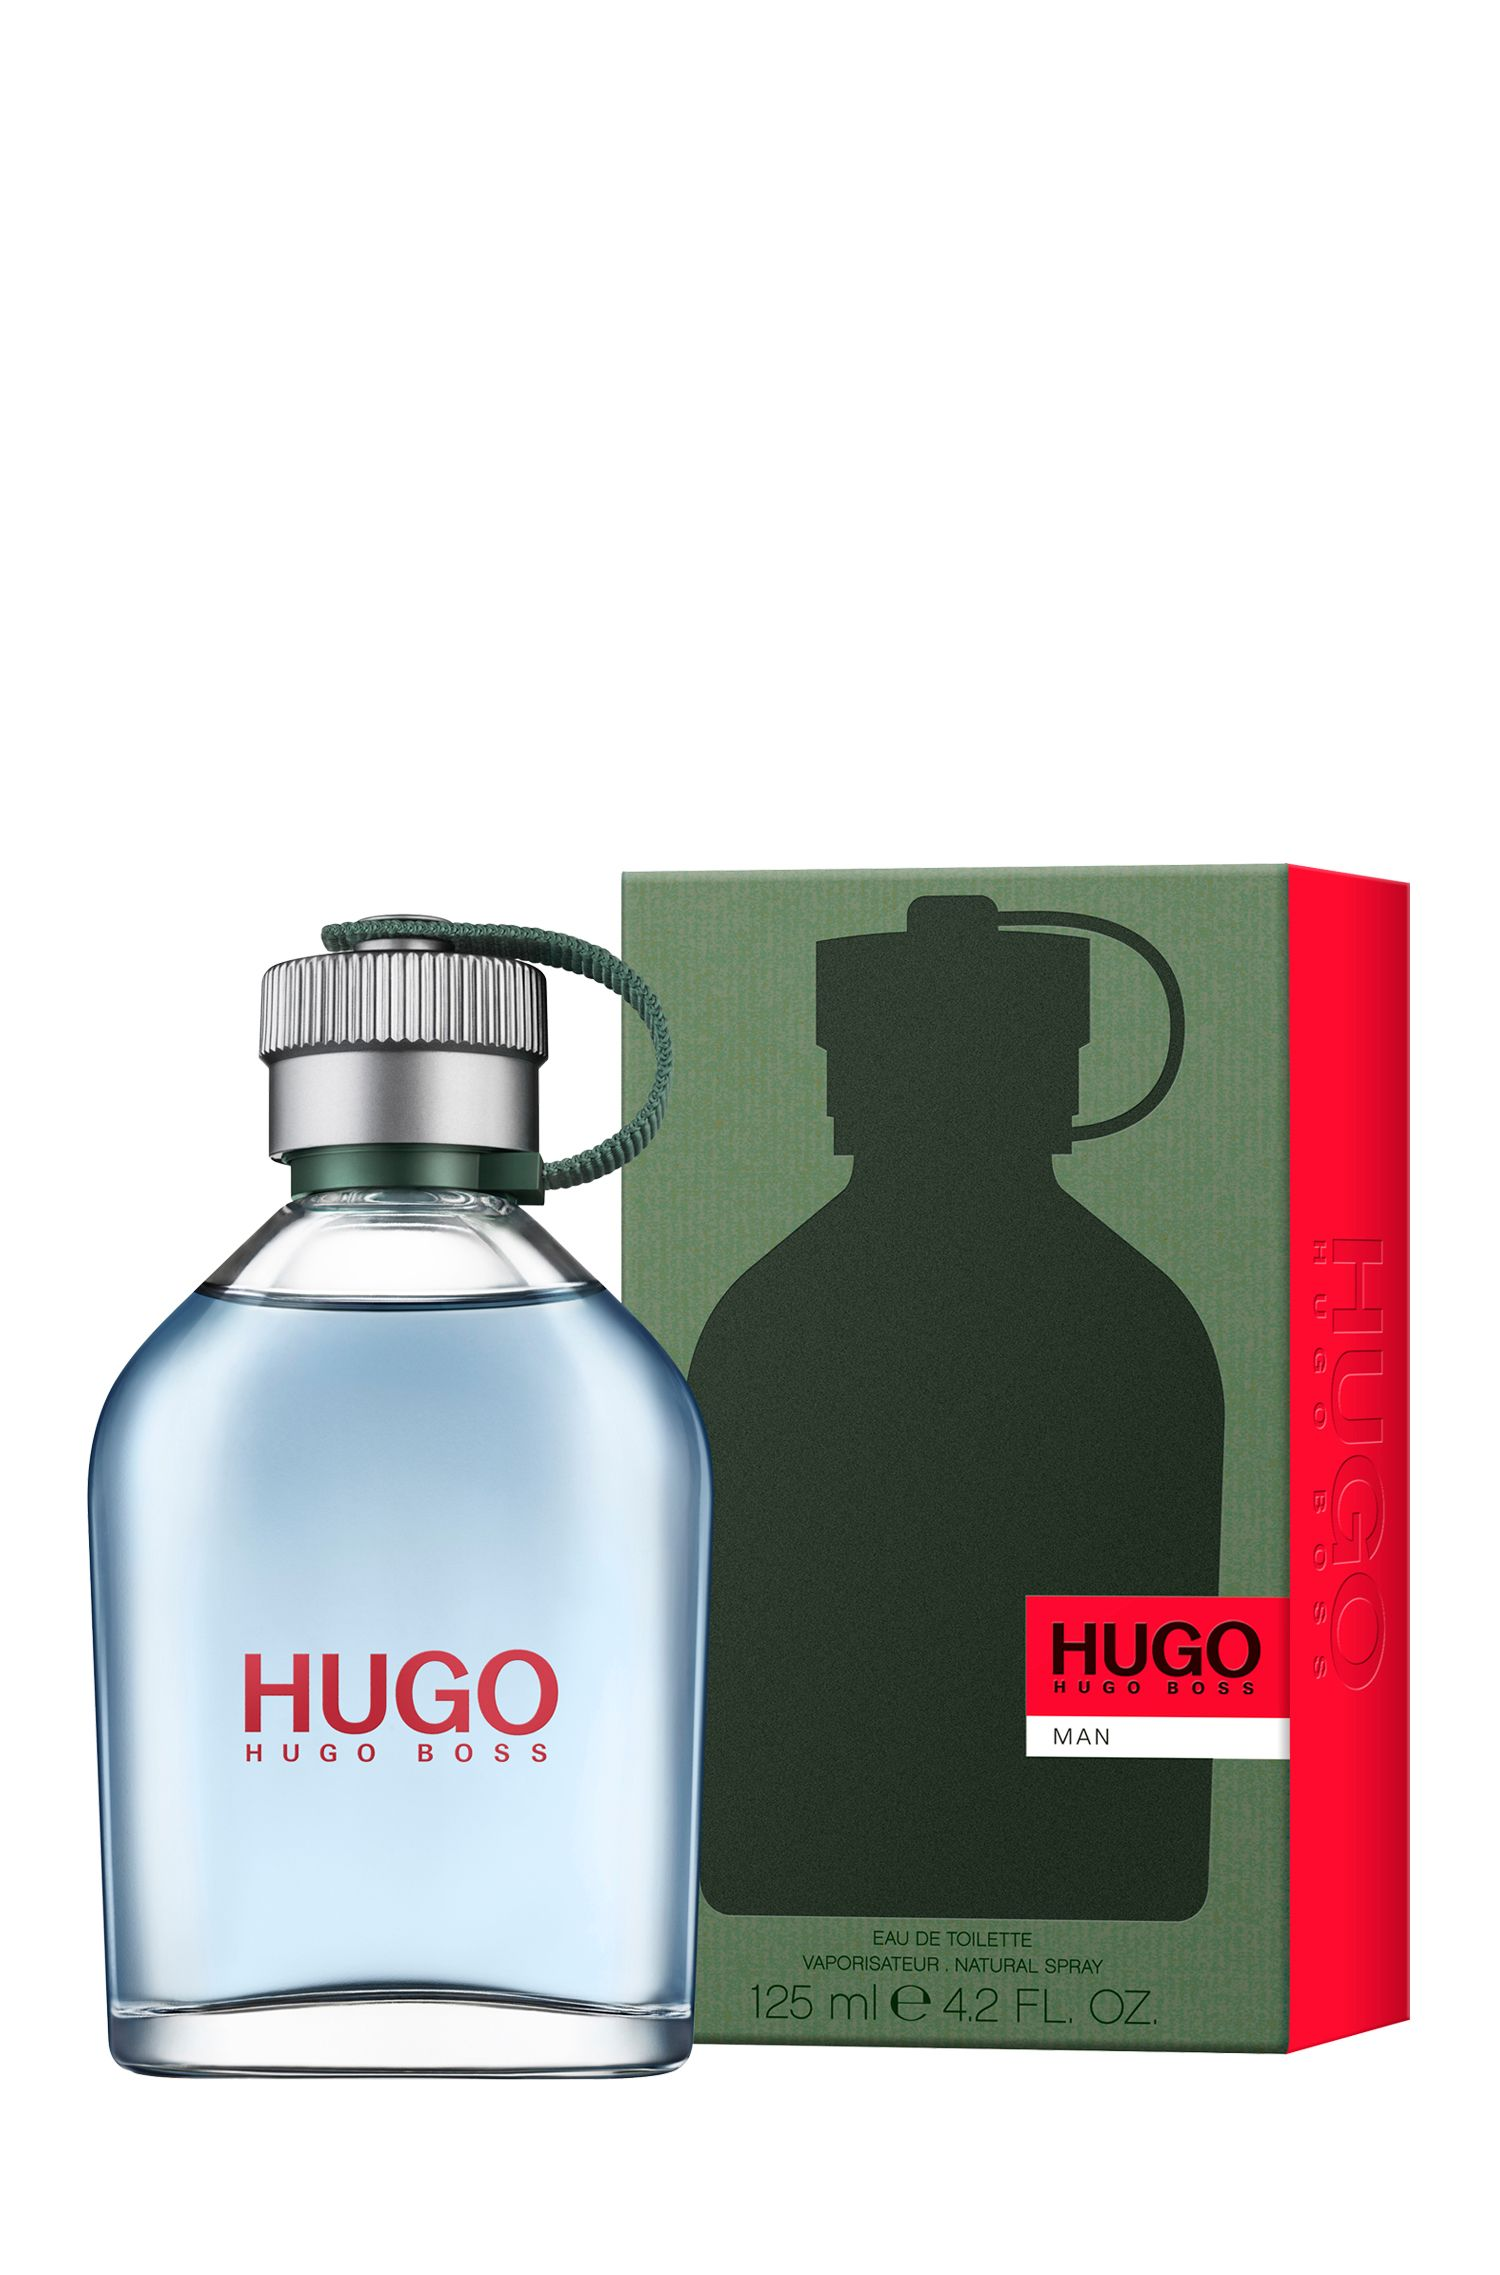 Eau de Toilette 'HUGO Man' 125 ml